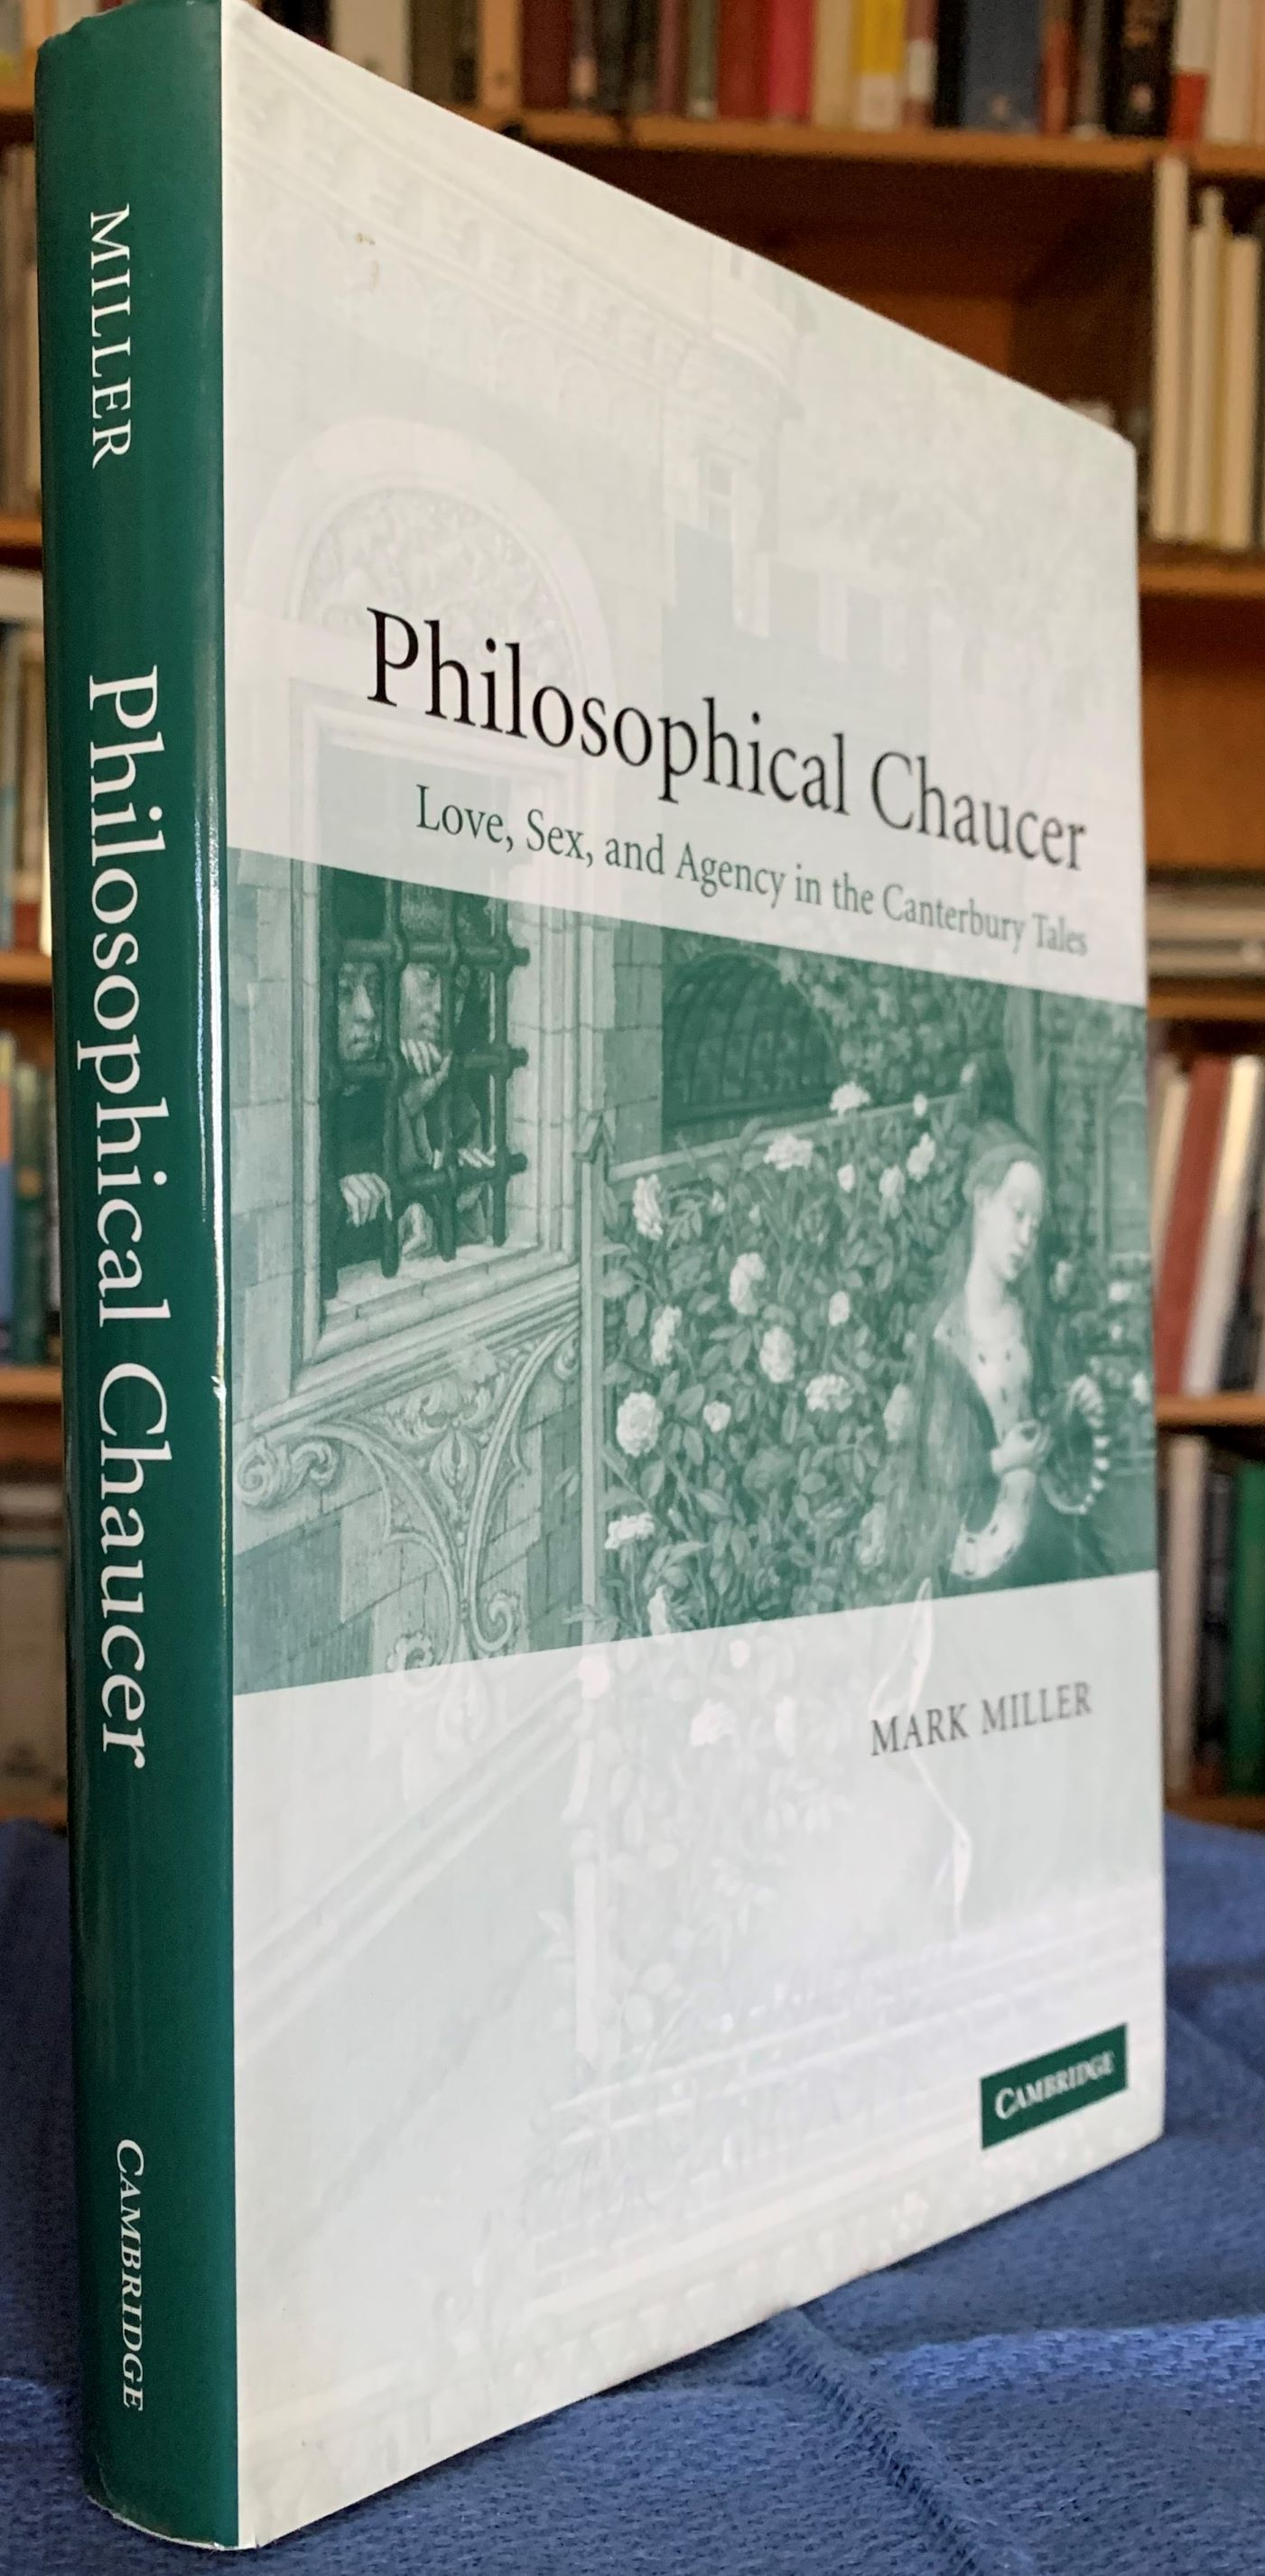 Image for Philosophical Chaucer: Love, Sex, and Agency in the Canterbury Tales [Inscribed by the author].